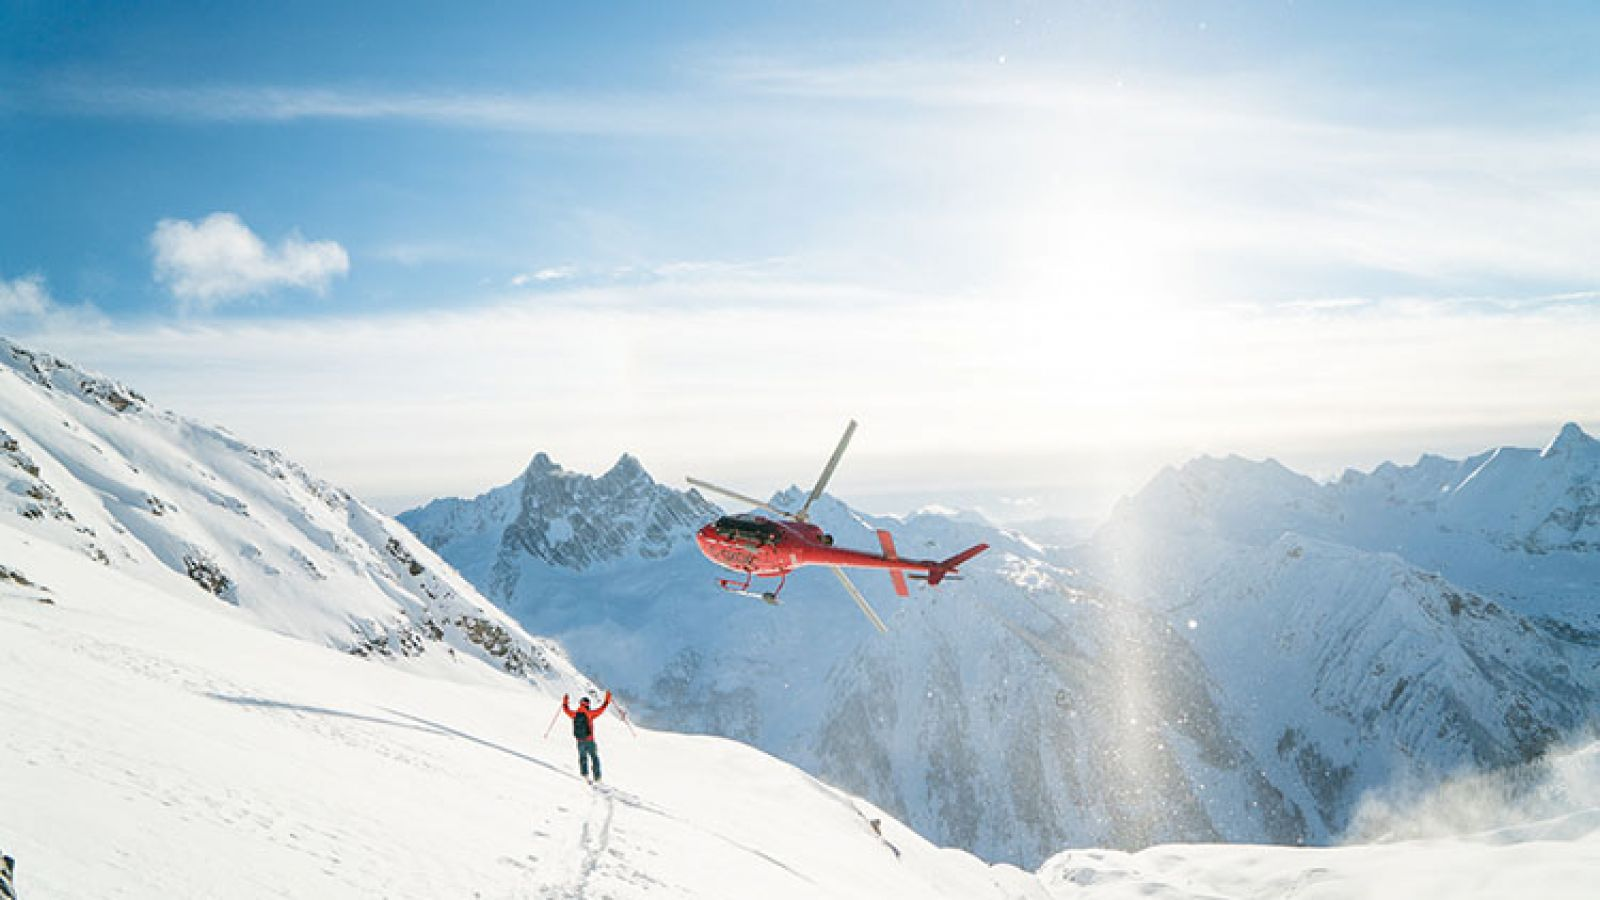 Rated Canada's Best Heli-skiing by SKIING Magazine in 2011.